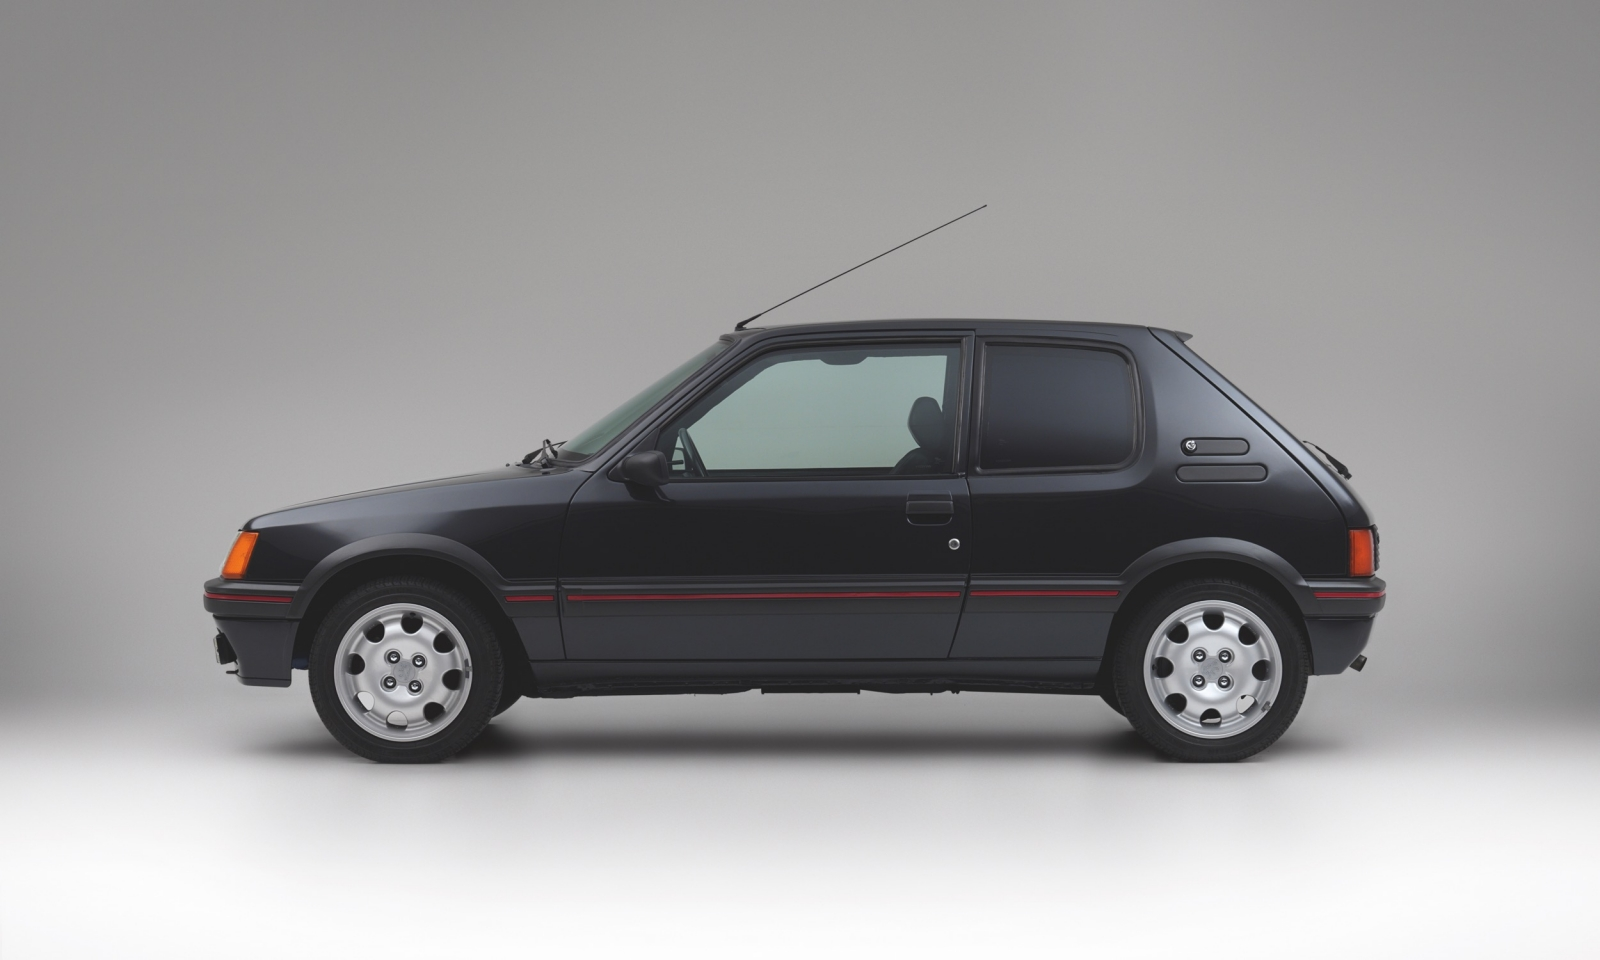 Check Out This Bulletproof Peugeot 205 Gti For Sale The Drive